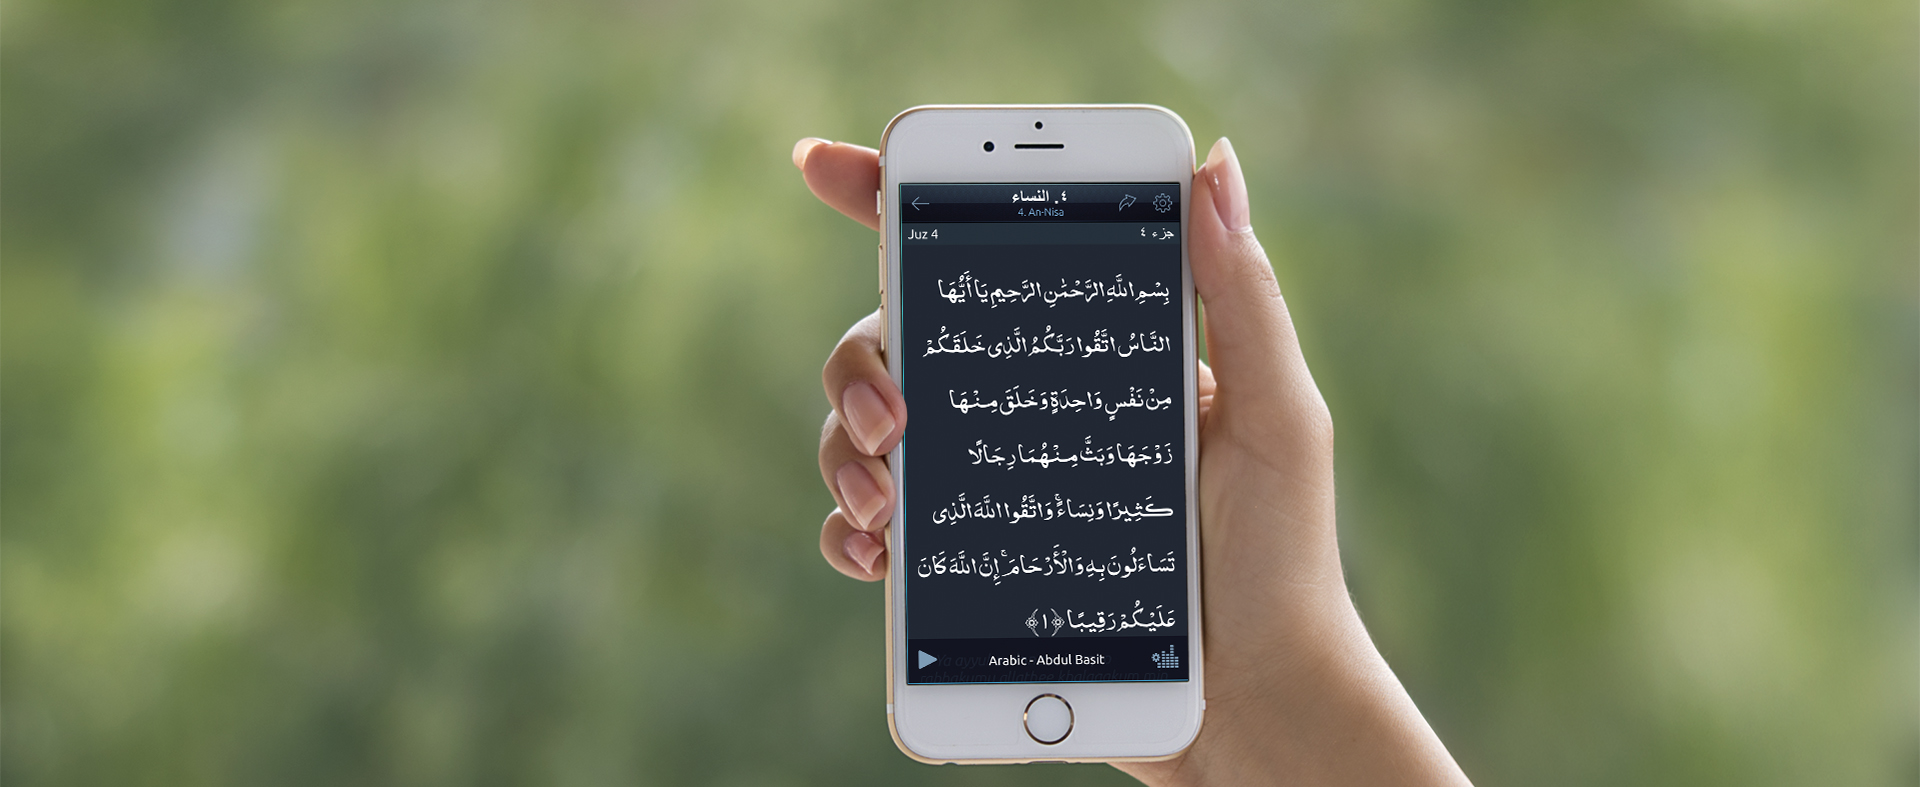 Al Quran: The Noble Source of Guidance